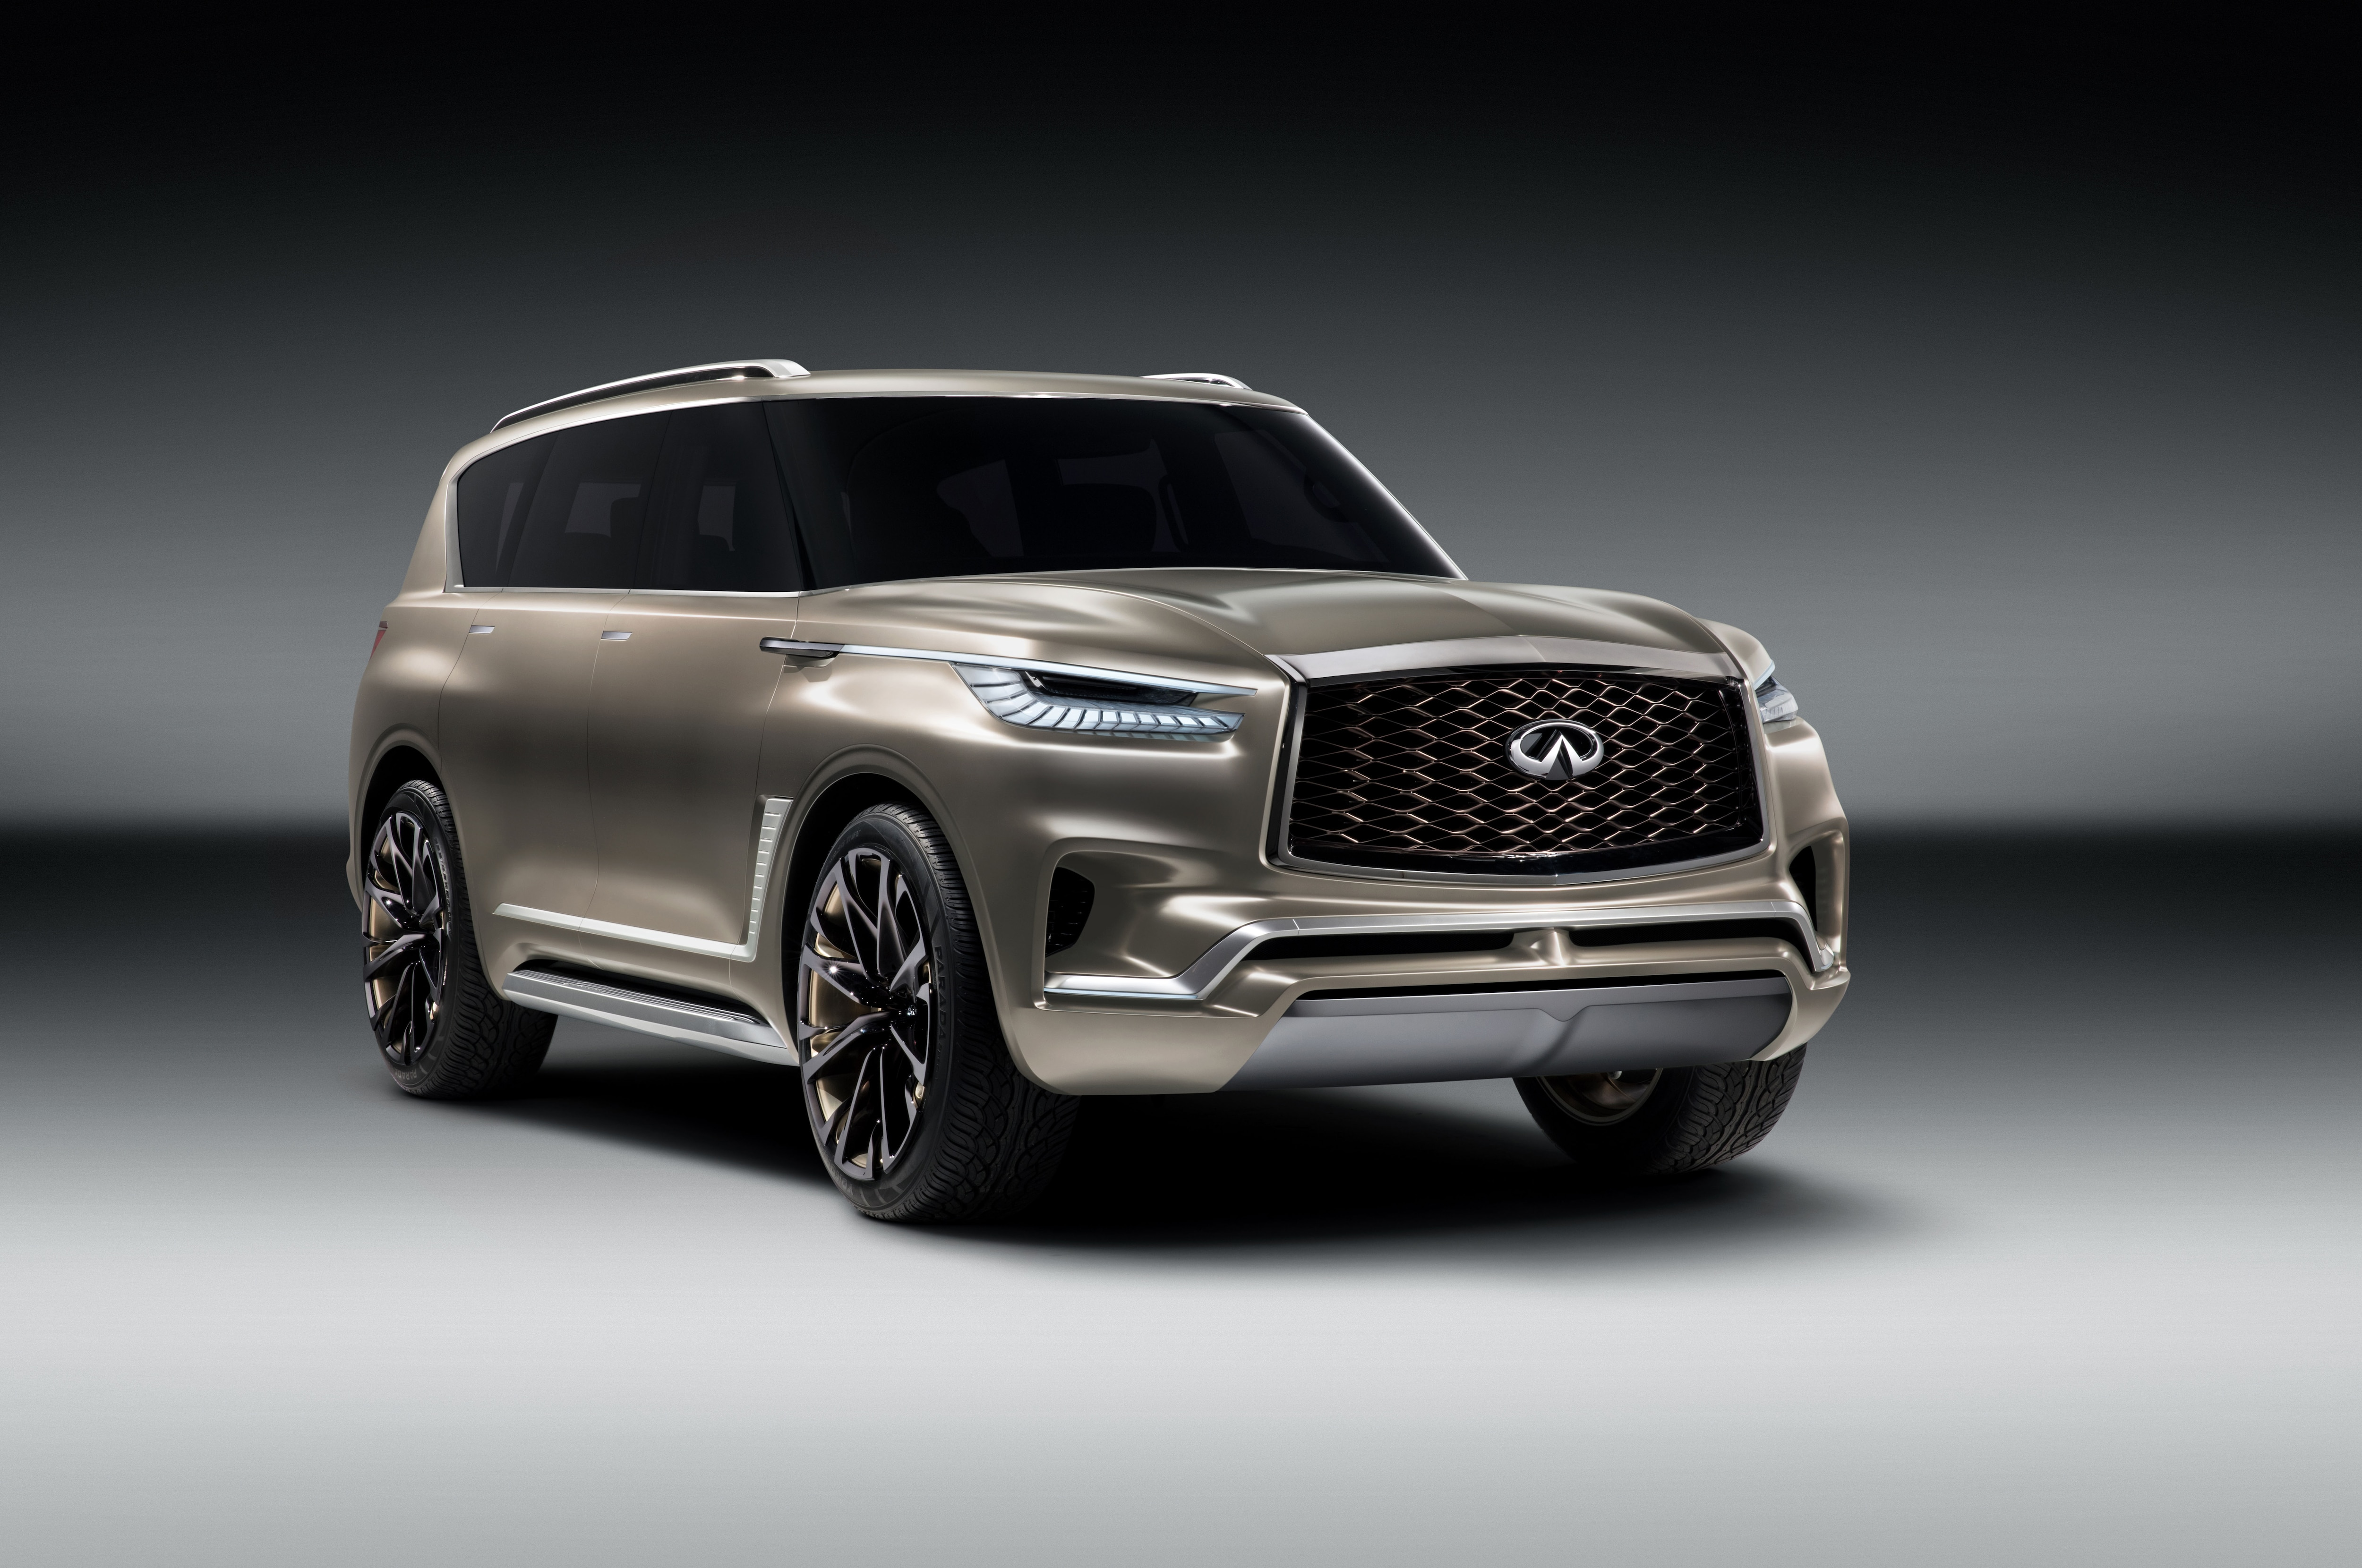 Infiniti QX80 interior specifications